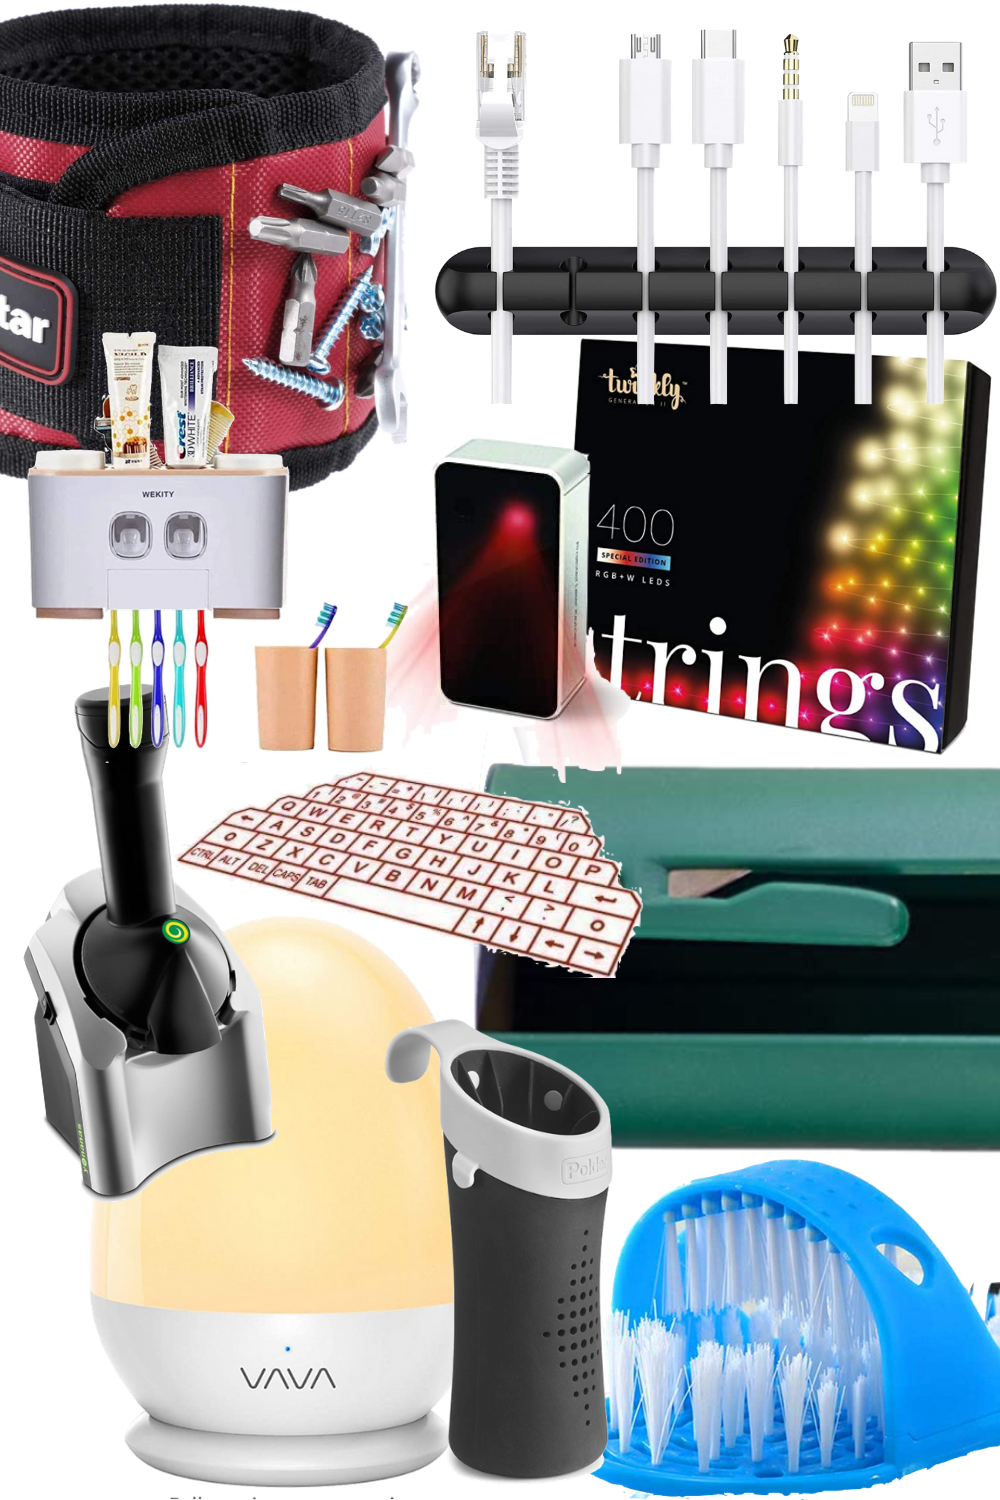 Cool Amazon Products You Didn't Know Existed - Check out some of these fun Amazon products that make life easier and more fun! | Best Amazon Products - Best Things To Buy On Amazon - Amazon Gadgets